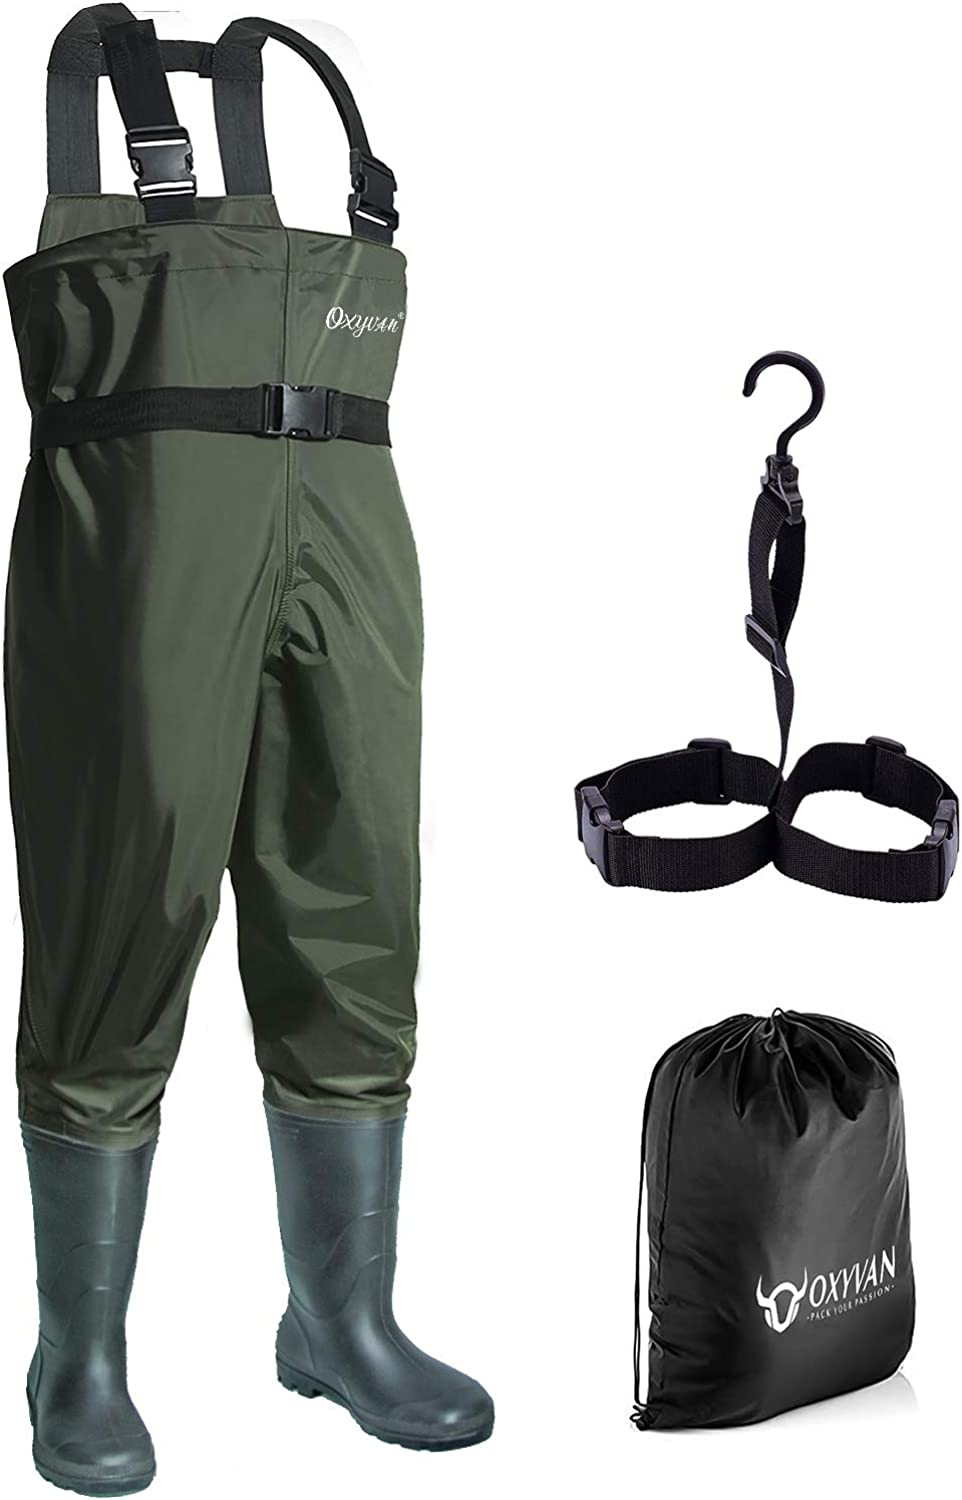 OXYVAN Waders Waterproof Lightweight Fishing Waders with Boots Bootfoot Hunting Chest Waders for Men Women : Sports & Outdoors